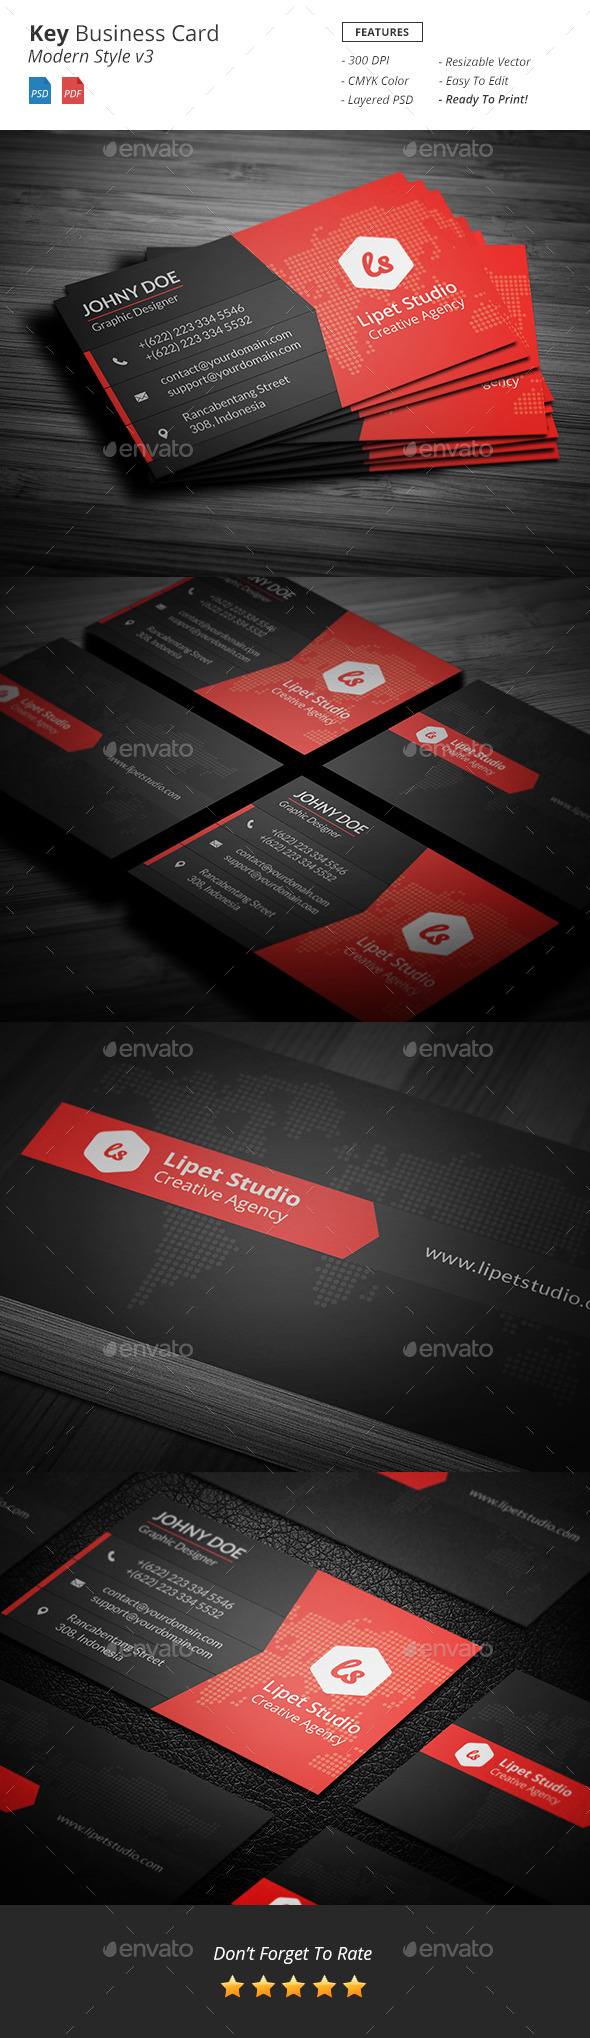 Key - Modern Business Card Template v3 - Corporate Business Cards